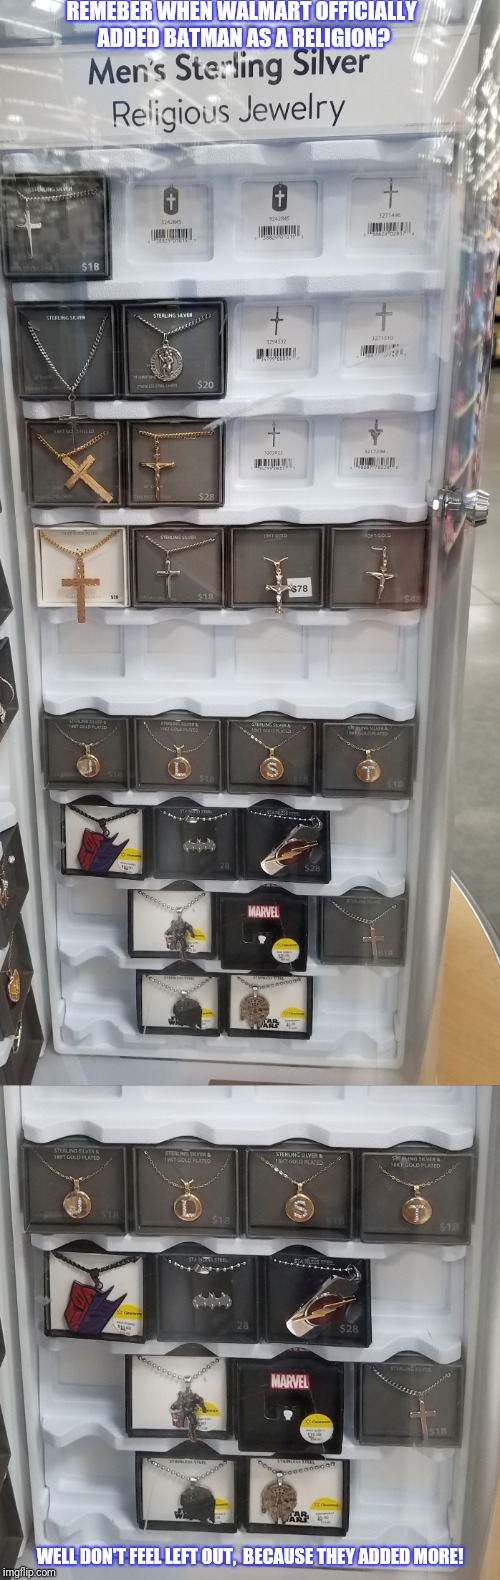 Hey Wal-Mart does care about other religions. | REMEBER WHEN WALMART OFFICIALLY ADDED BATMAN AS A RELIGION? WELL DON'T FEEL LEFT OUT,  BECAUSE THEY ADDED MORE! | image tagged in religion,superheroes,star wars,transformers,walmart,memes | made w/ Imgflip meme maker